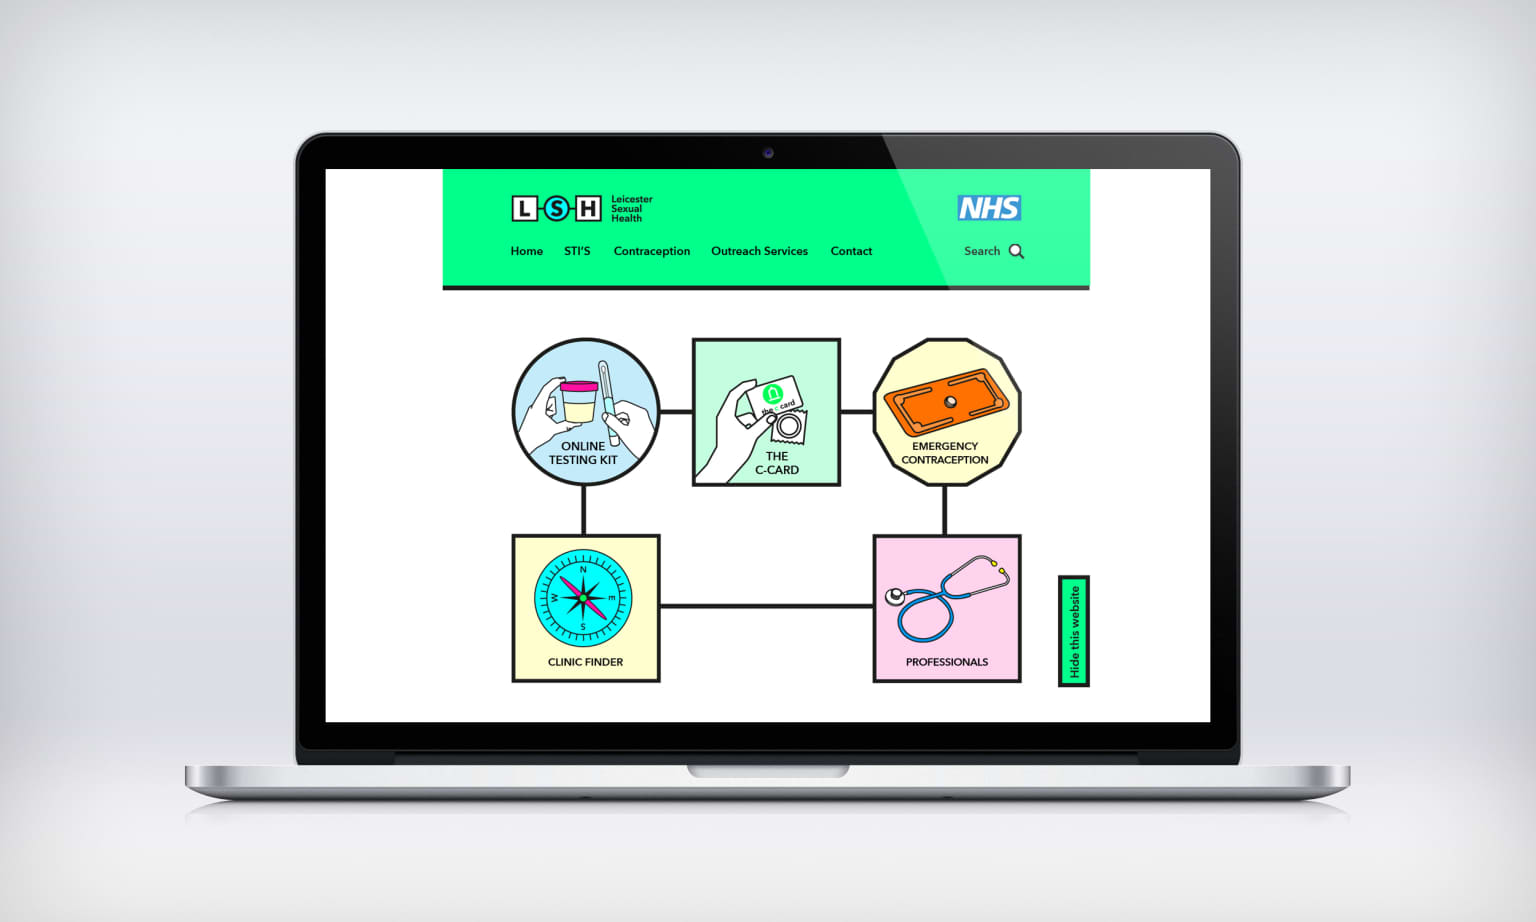 NHS Leicester Sexual Health Re-Brand and Web-design